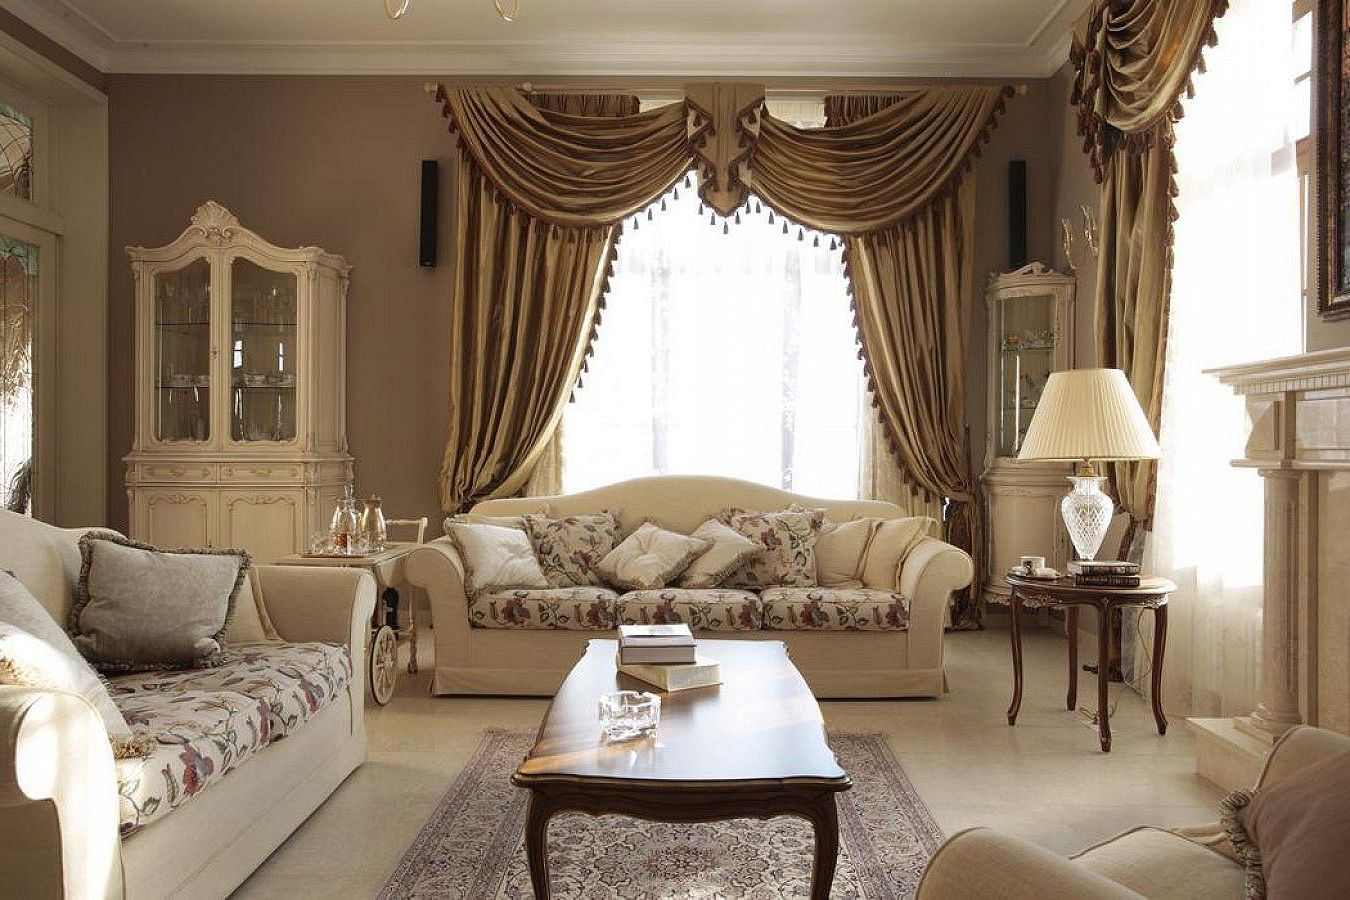 Classic style interior design ideas - Interior design living room styles ...